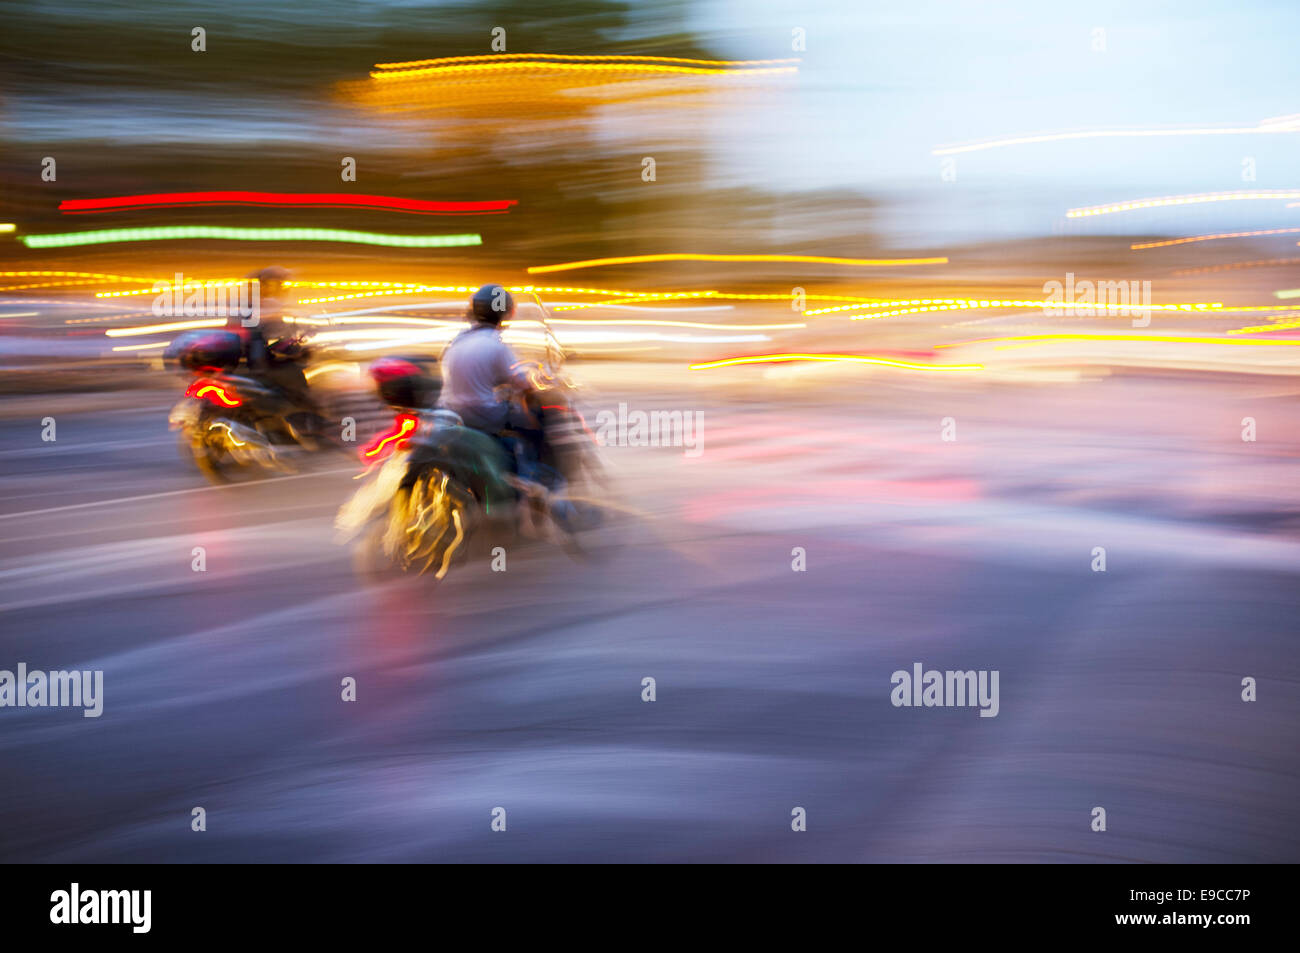 Abstract blurry image of a scooters driving at night. - Stock Image